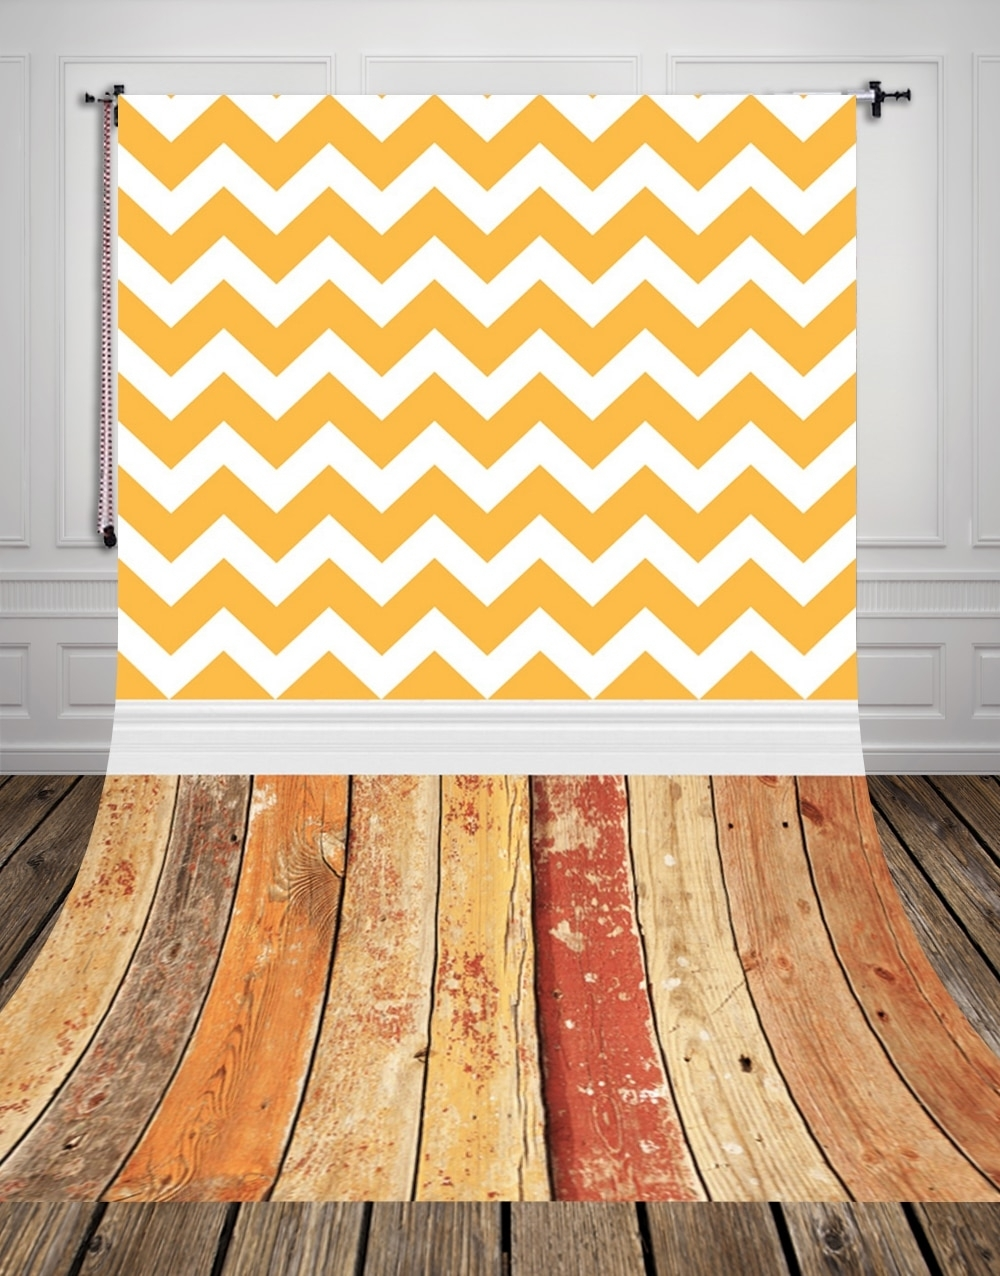 Huayi Vintage Wood Floor Backdrop Vintage Yellow Chevron Wall Art Inside Most Up To Date Chevron Wall Art (View 16 of 20)